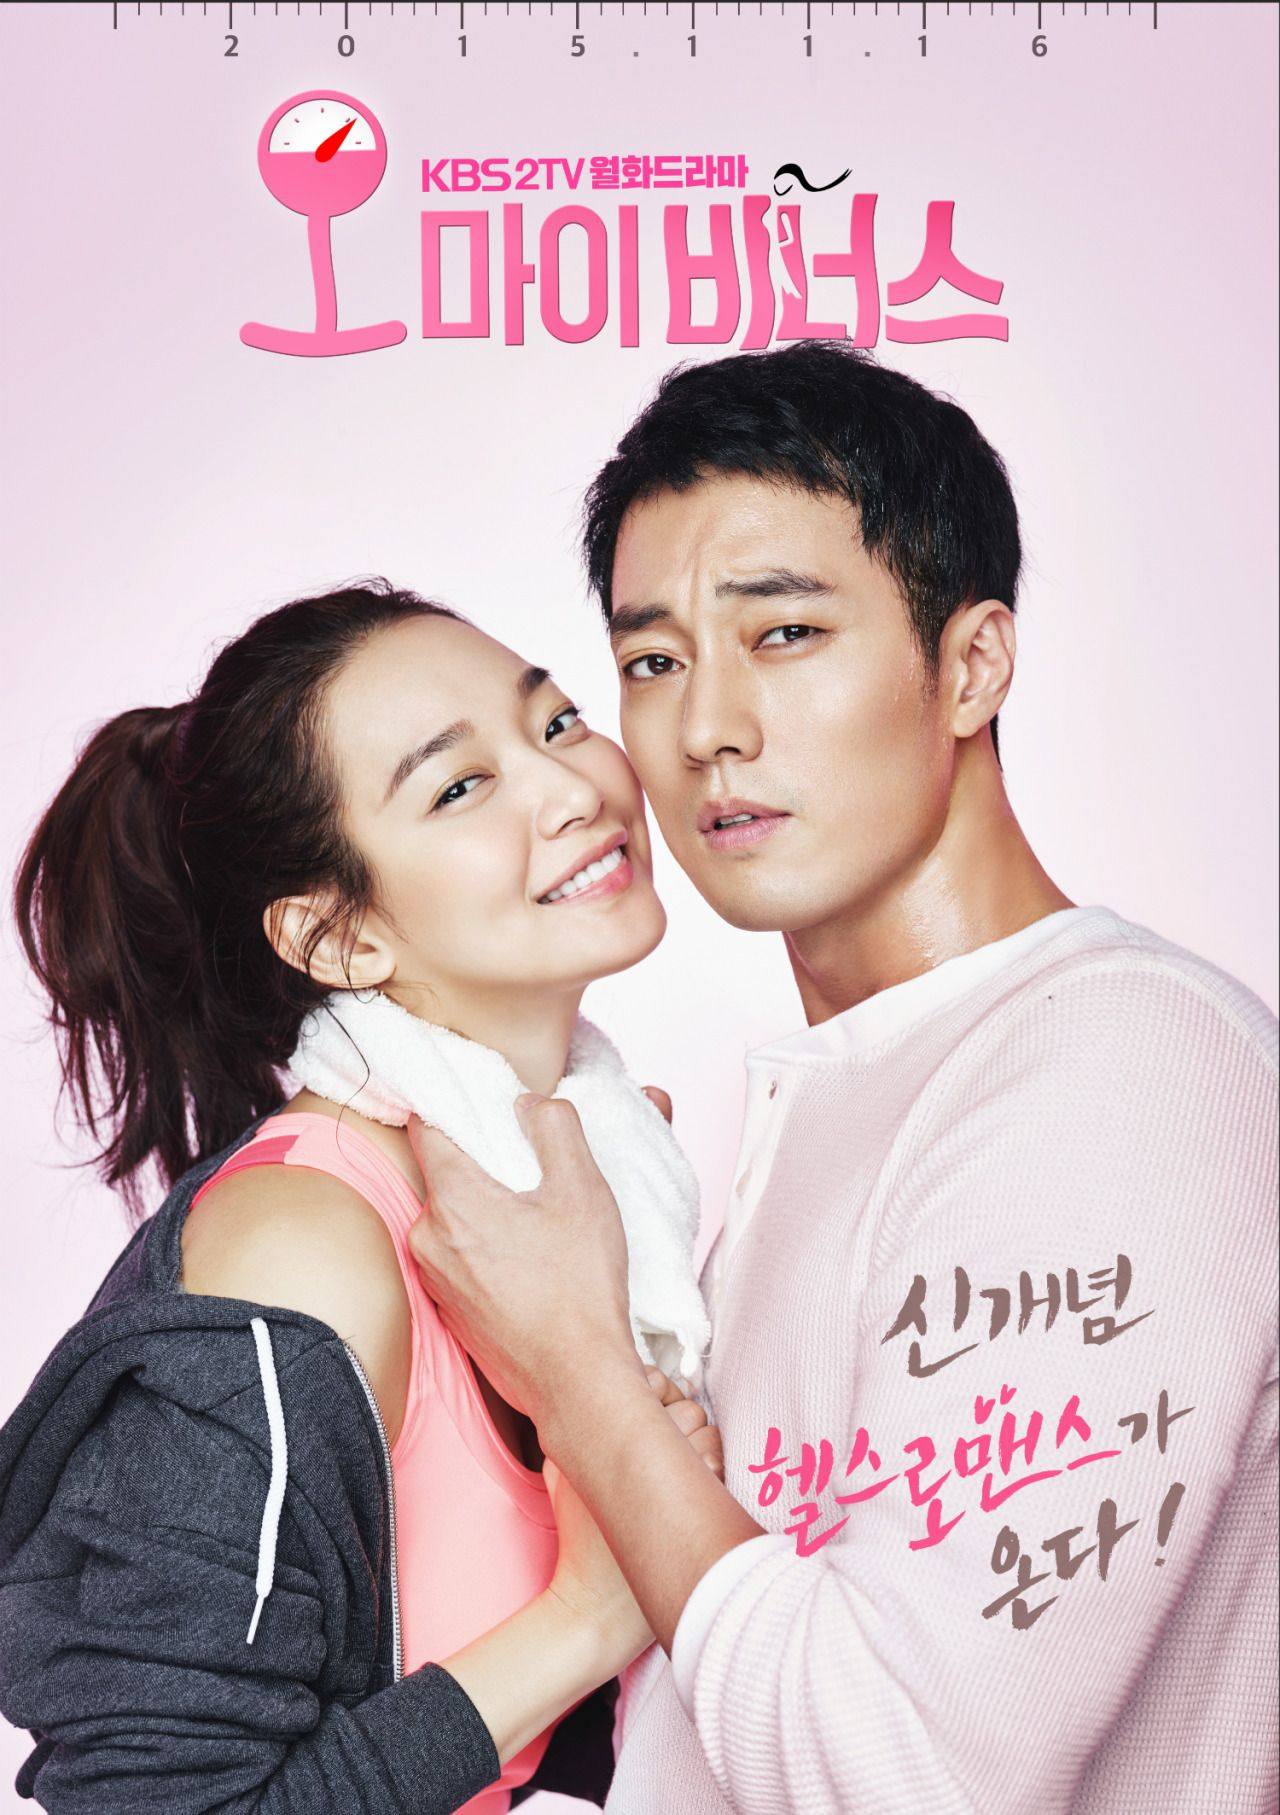 Oh My Venus! (South Korea, 2015; KBS2). Starring Shin Min-ah, So Ji-sub, Jung Gyu-woon, Yoo In-young, and more. Aired Monday & Tuesday at 9:55 p.m. (2 eps/week) [Info via Asian Wiki] >>> Currently available on DramaFever, Hulu, Viki, & Yahoo View. (Updated: Aug. 9, 2016.)